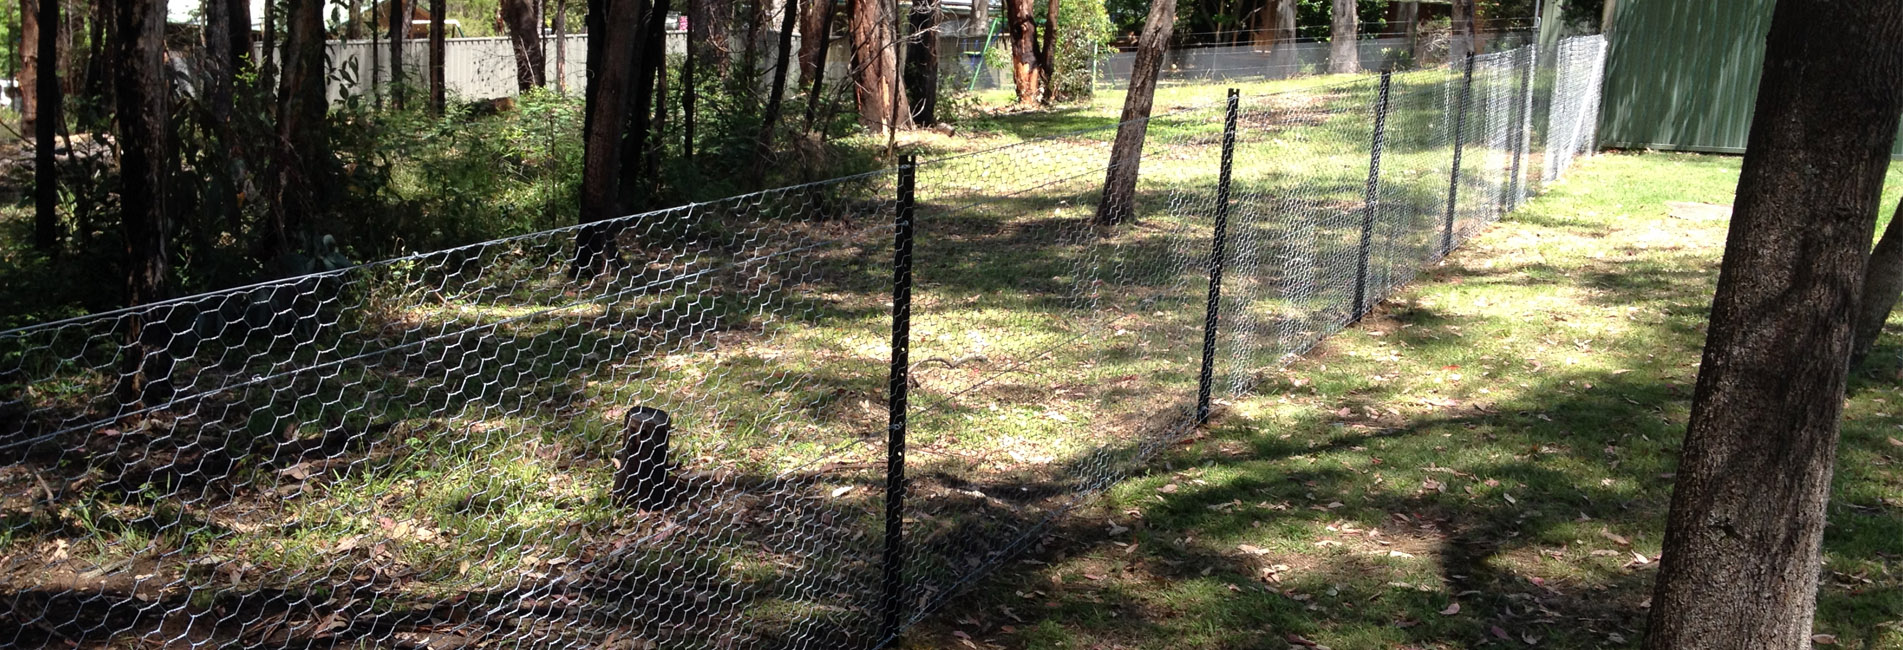 Fire Fencing and Chain Wire Fences Springwood